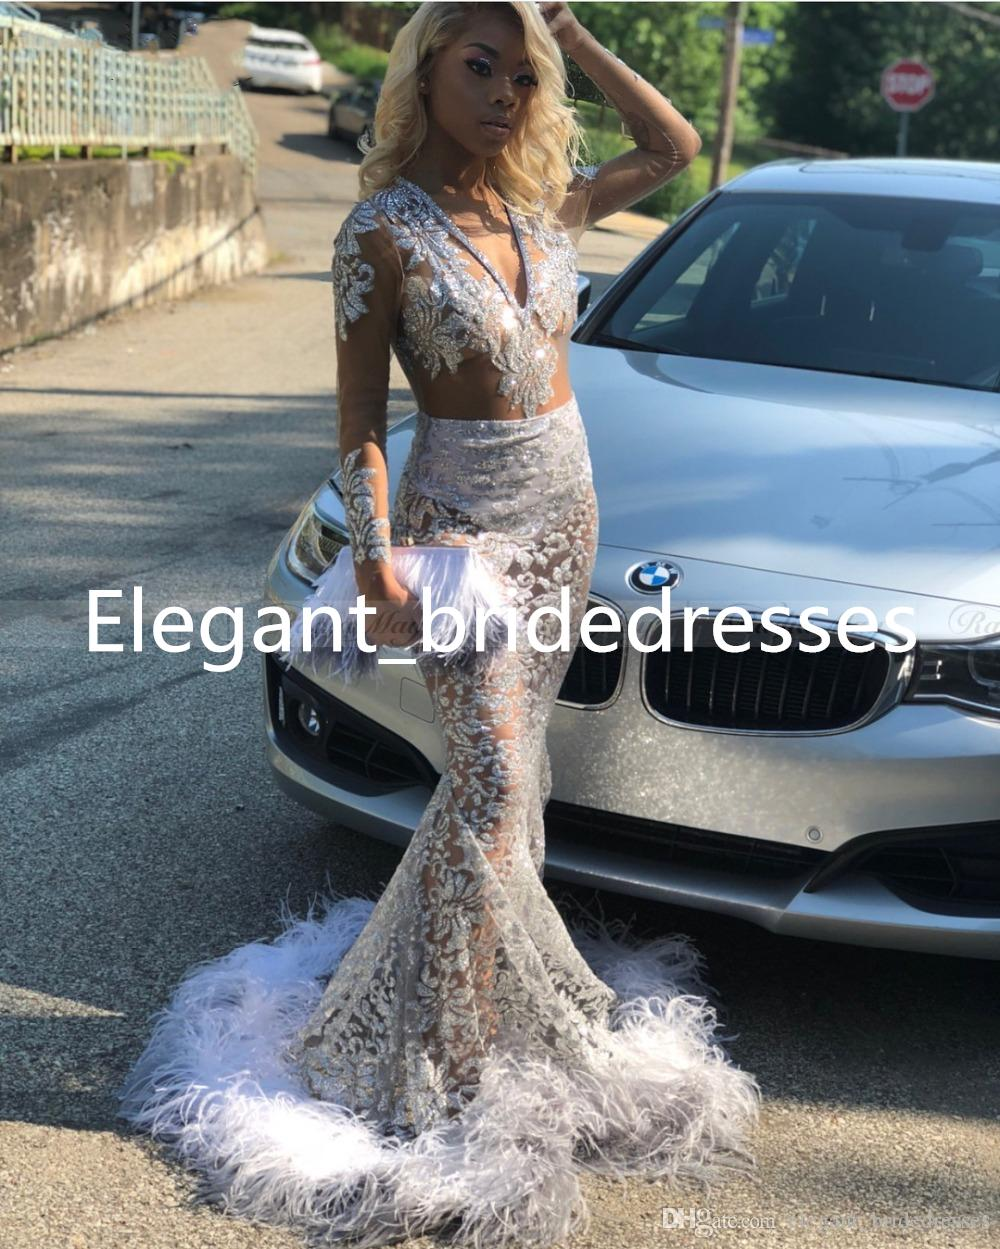 2019 Glitter Silver Sequin Mermaid Black Girls Prom Dresses with Feathers Train Long Sleeves Open Back African Graduation Party Dress